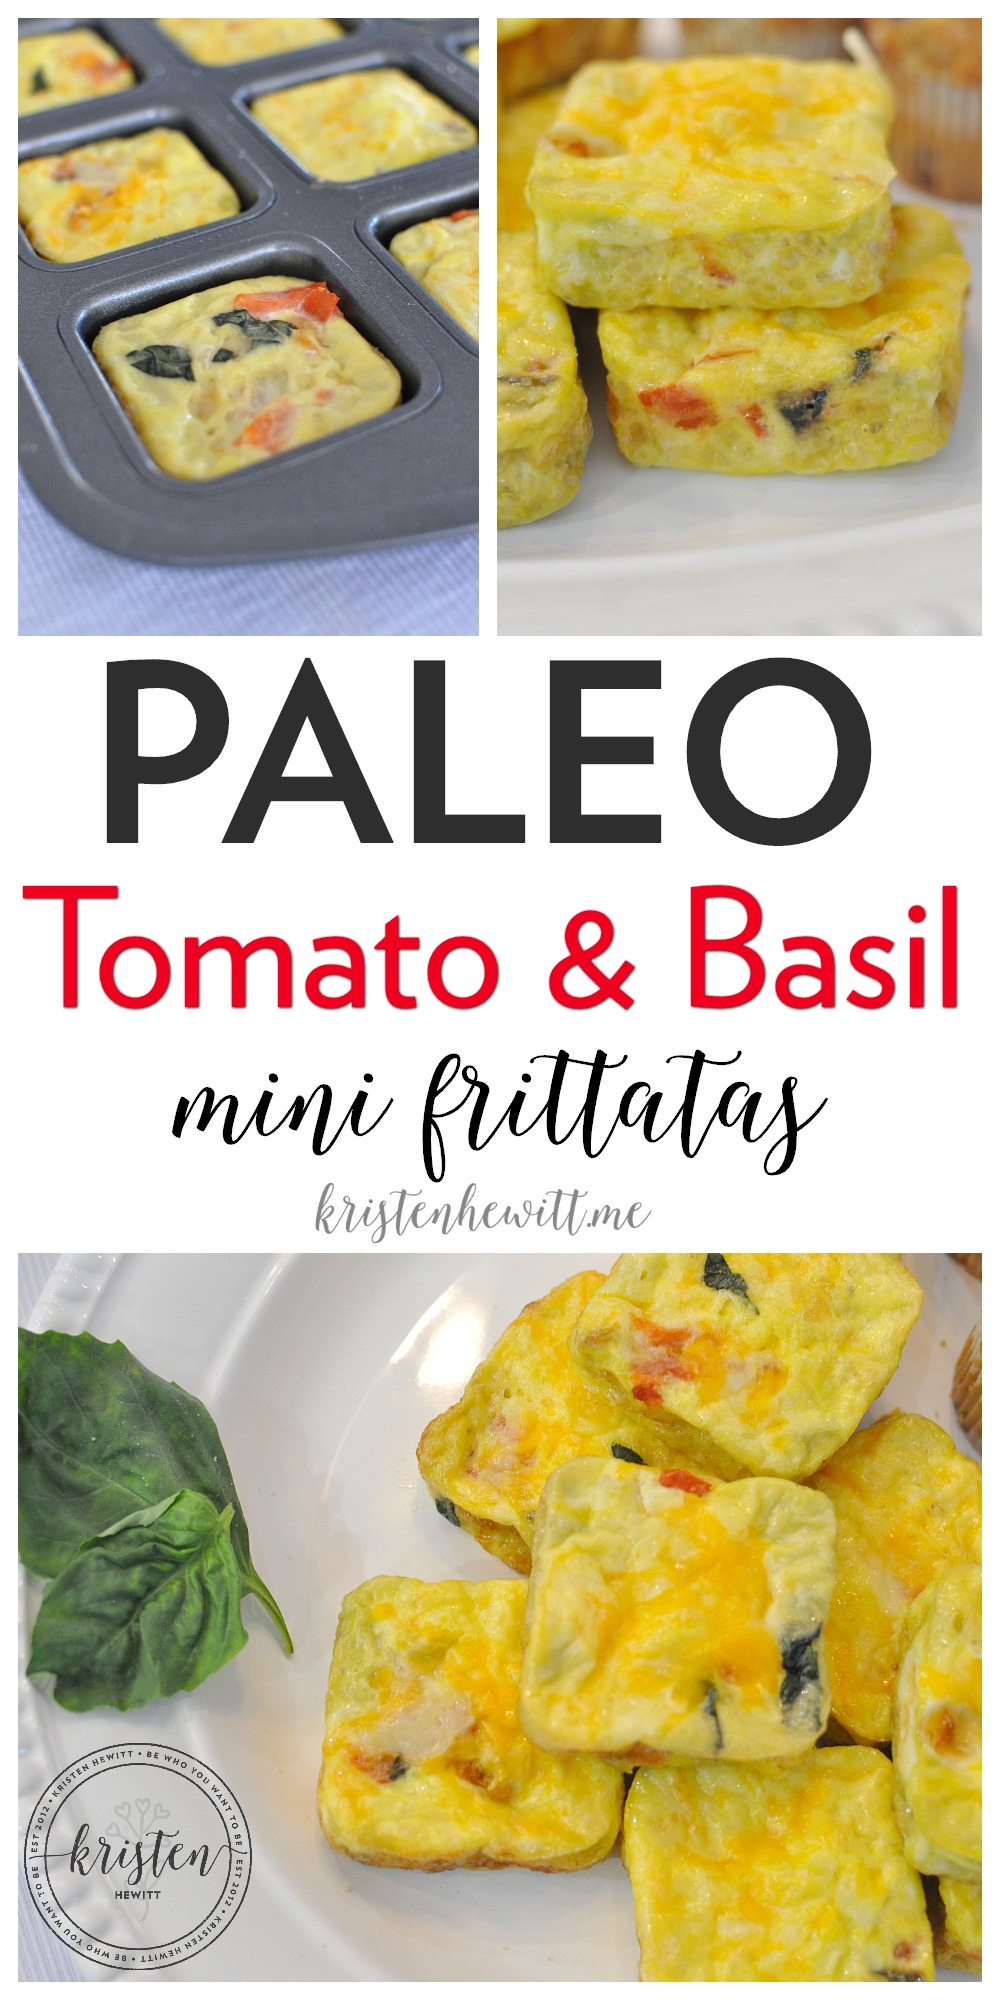 Looking for an easy breakfast recipe that you can make ahead?! Try these DELISH Paleo Tomato & Basil Mini Frittatas. Little in size but BIG in flavor!